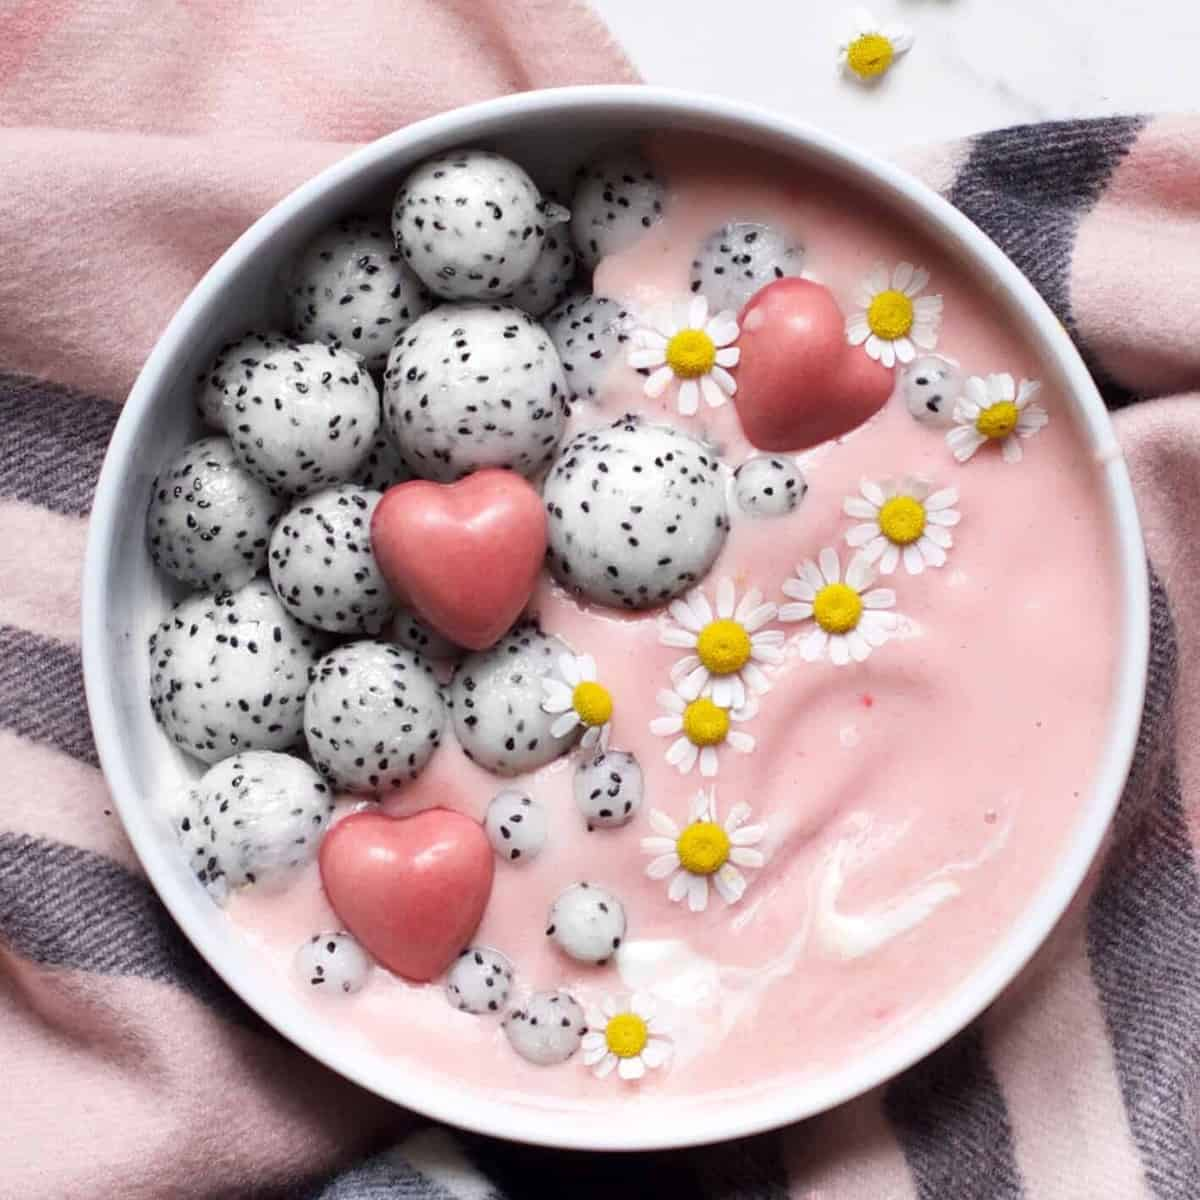 A bowl with pink smoothie and some dragon fruit balls pink chocolate hearts and edible camomile flowers